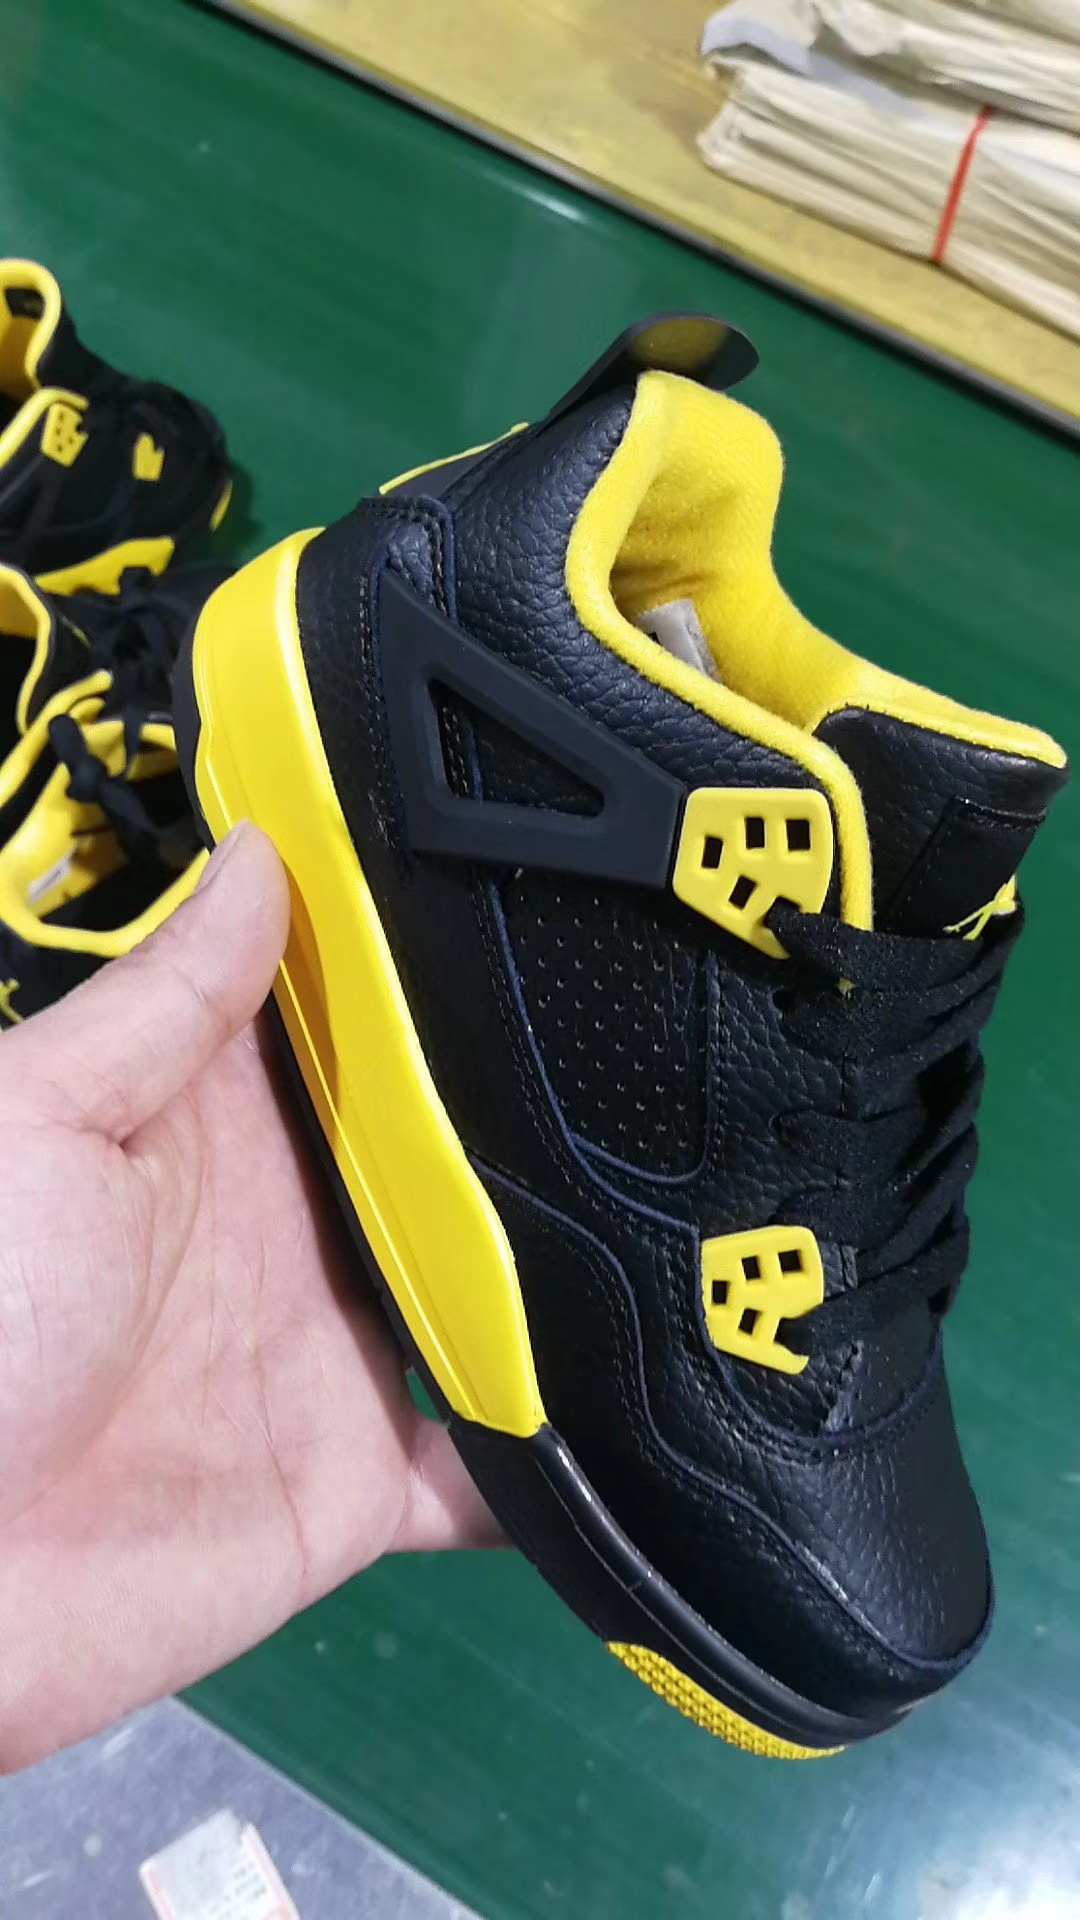 New Kids Air Jordan 4 Black Yellow Shoes